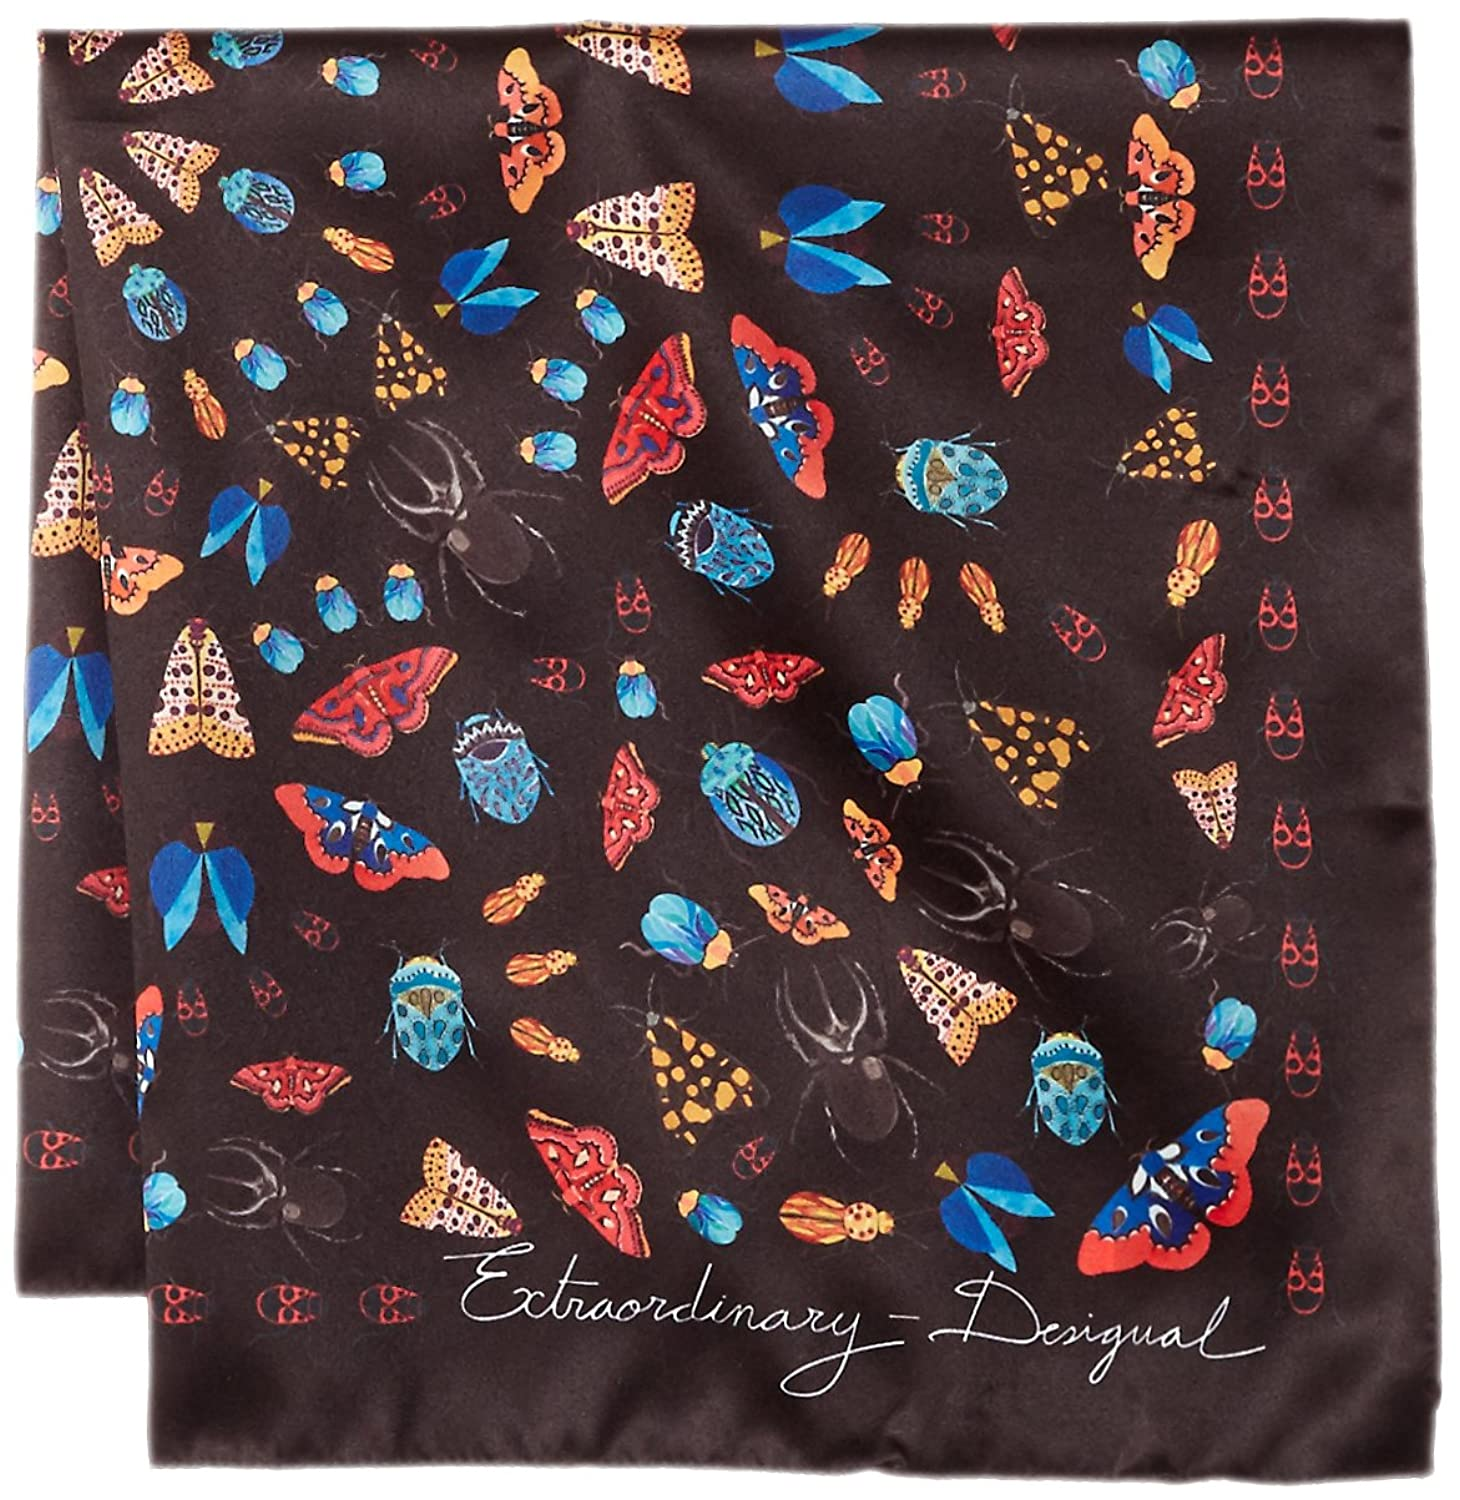 DESIGUAL PASHMINA WOMAN FOULARD WINTER FLORAL PEQ 17WAWFH6 black:  Amazon.co.uk: Clothing